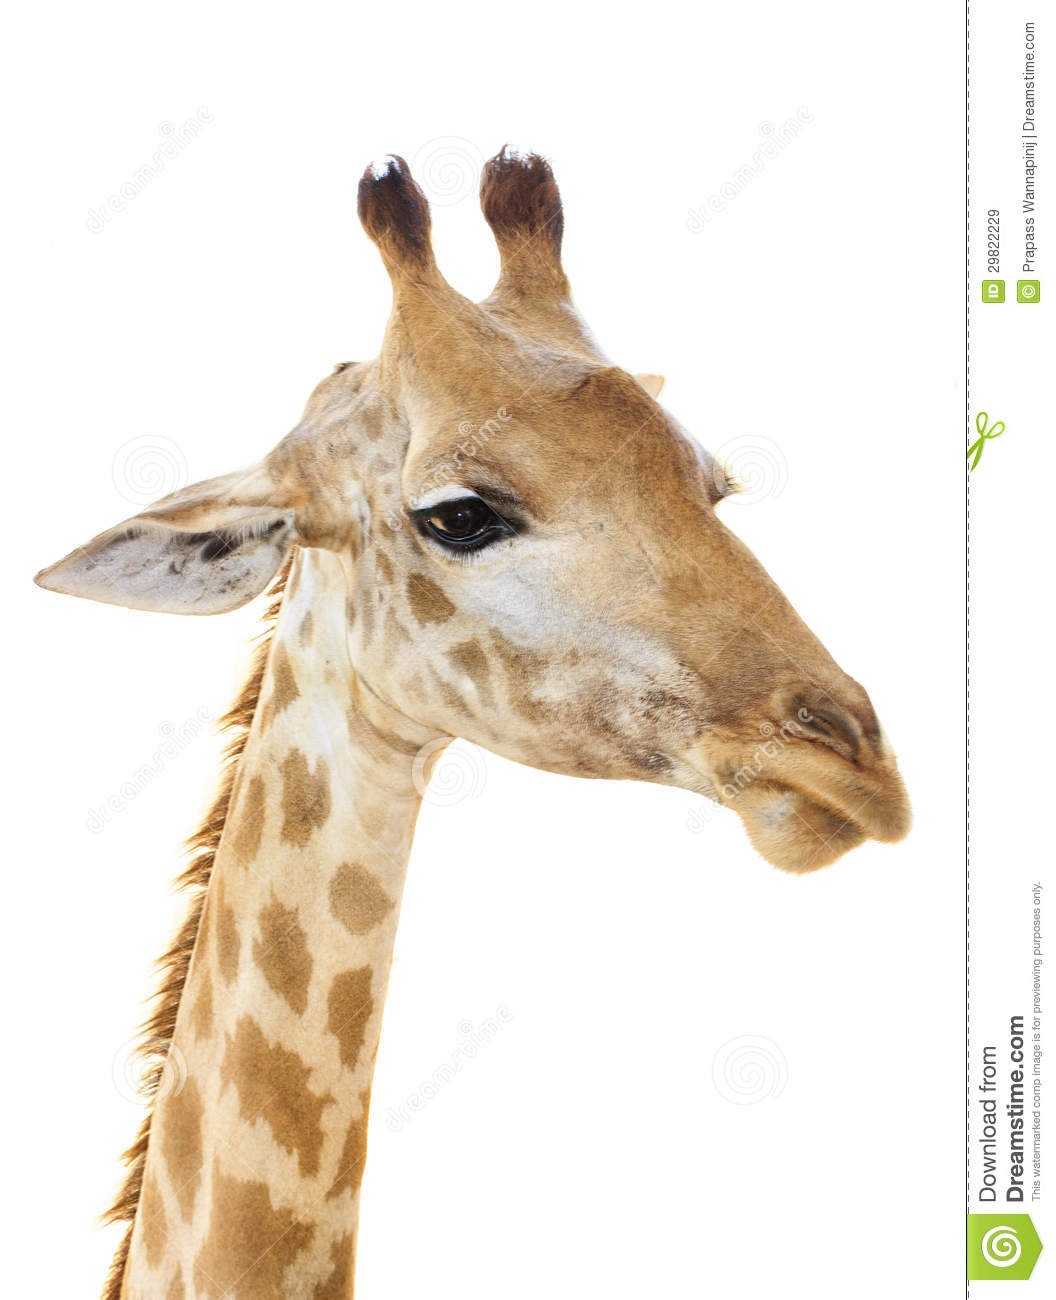 giraffe head white background - photo #48